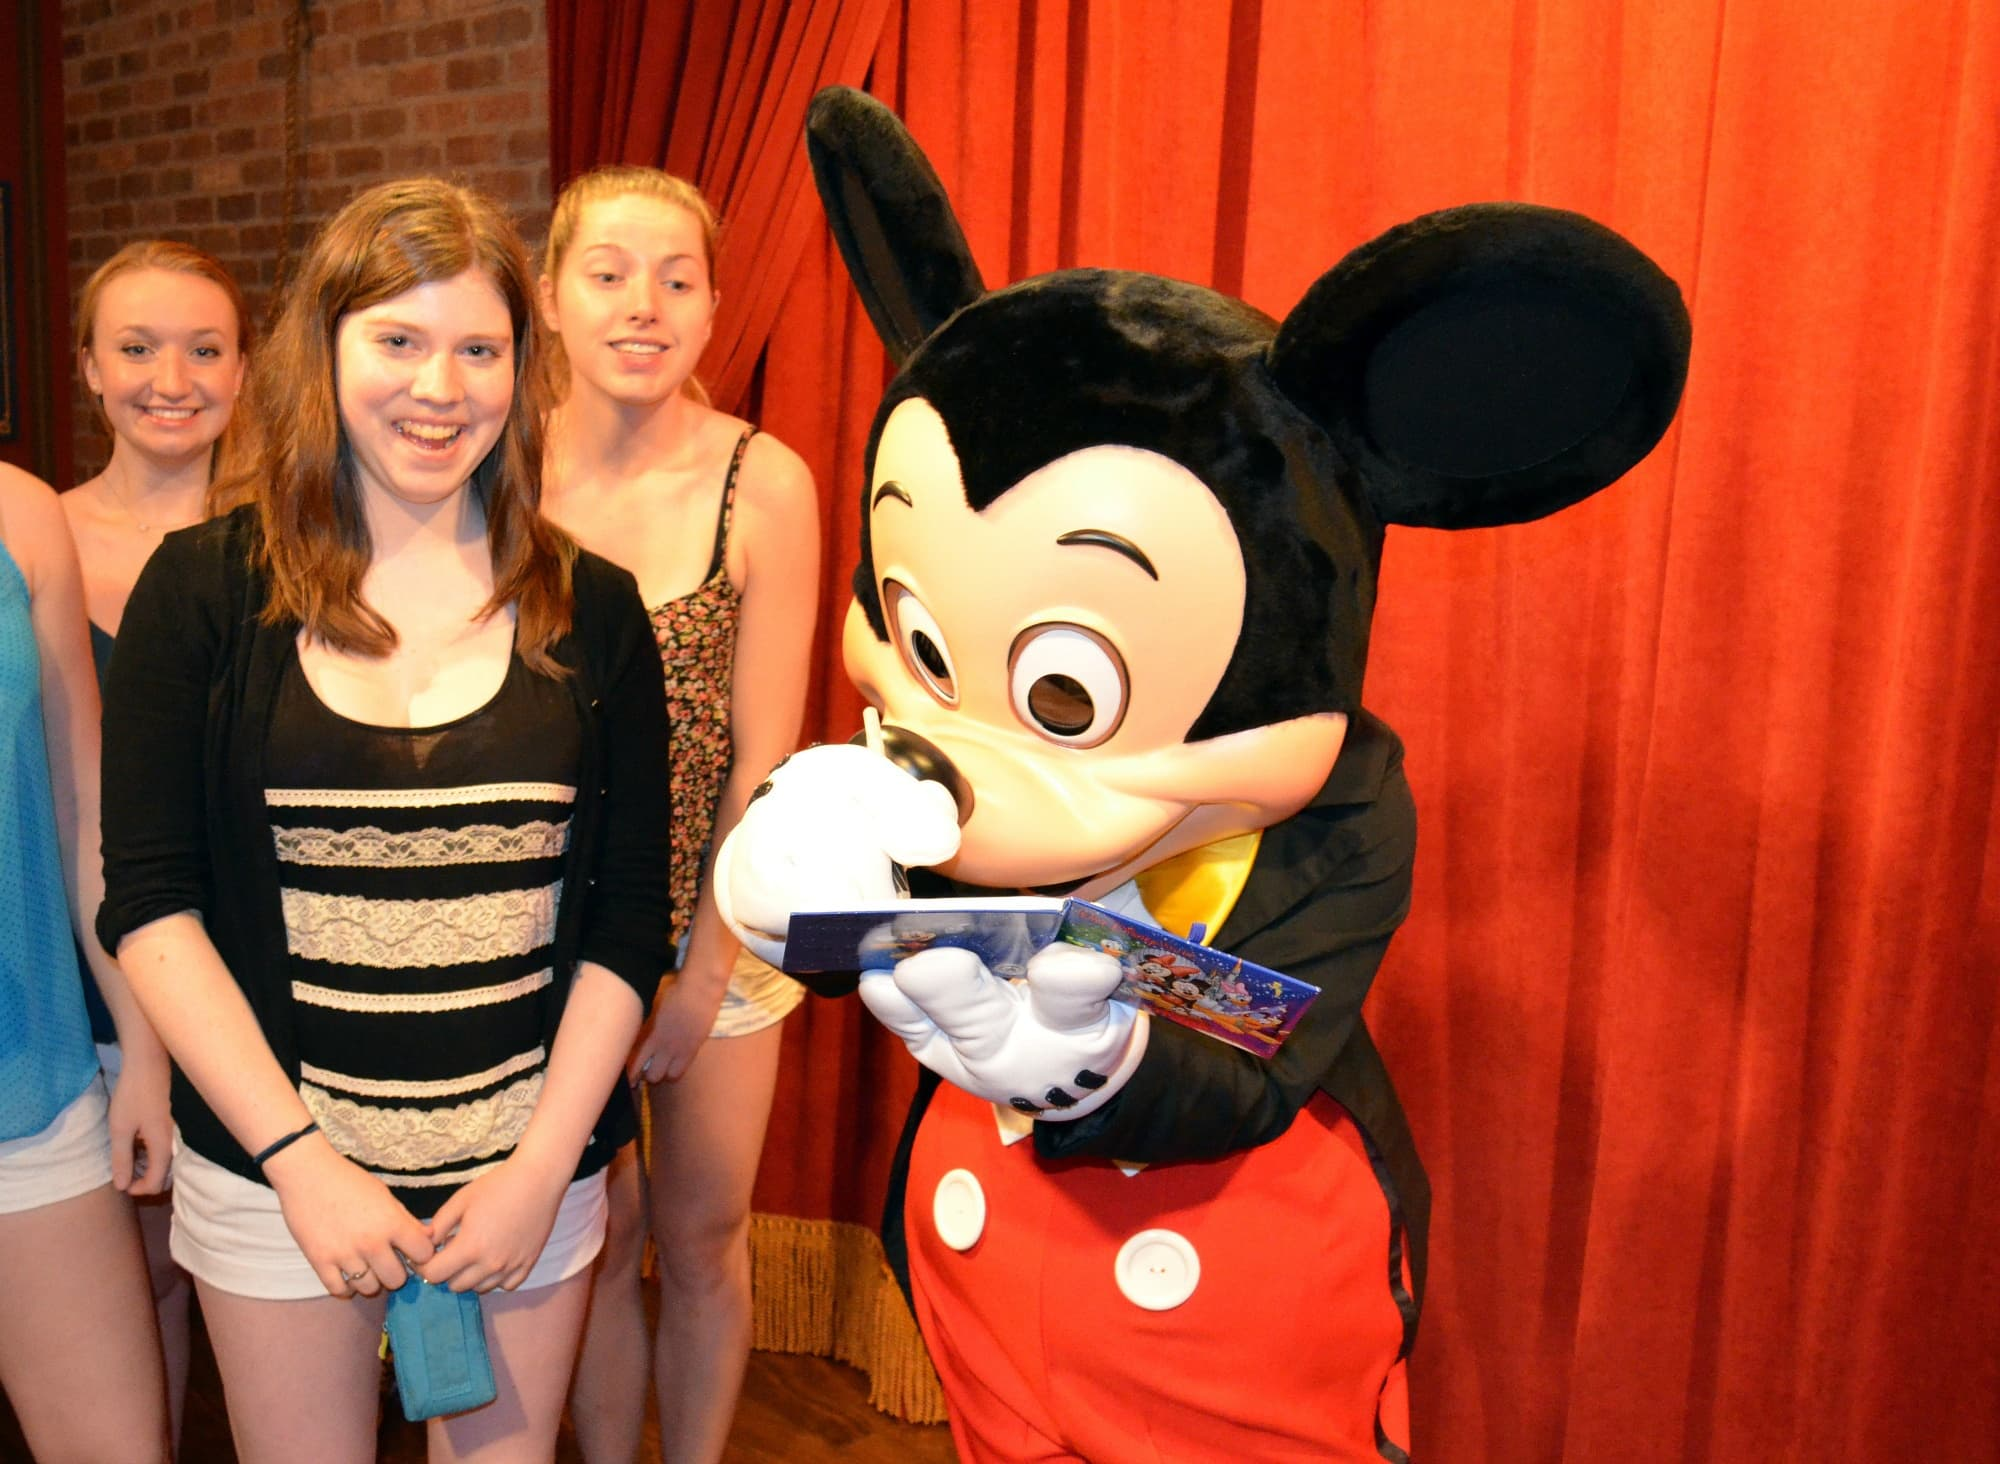 Many teens and tweens like meeting characters like Mickey Mouse ~ Disney World with Teens & Tweens